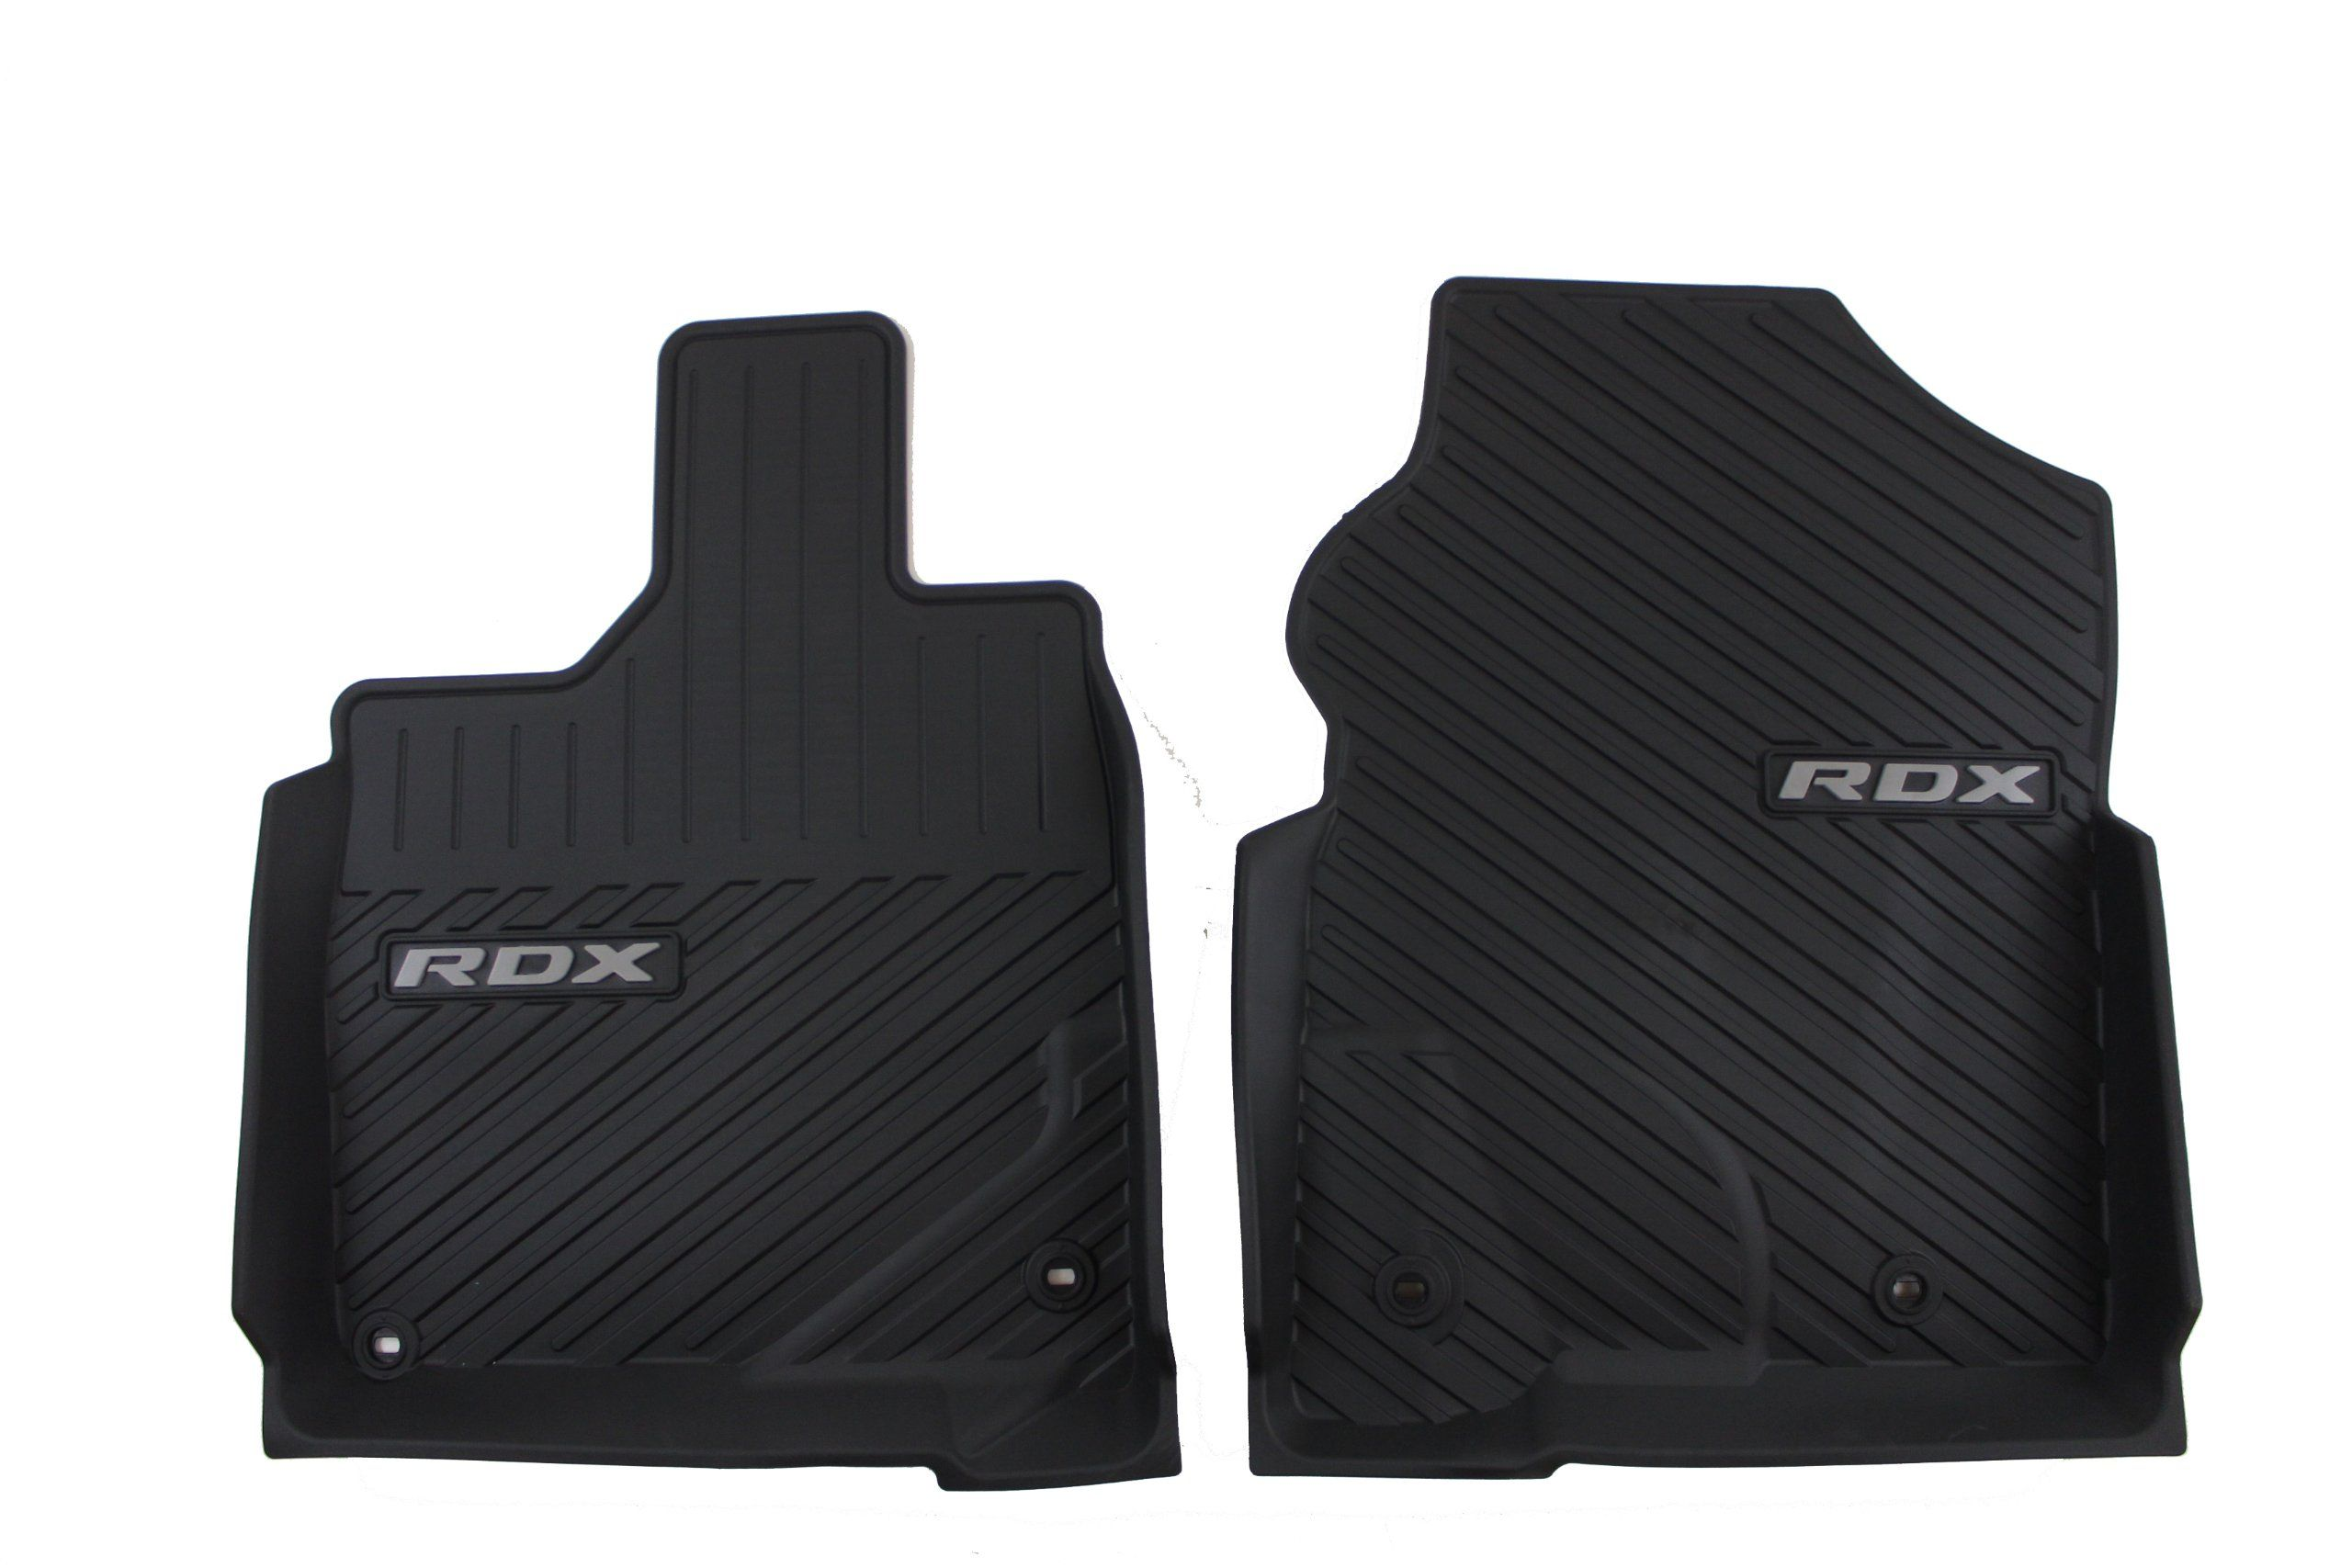 Genuine Acura Accessories 08p13 Tx4 210 All Season Floor Mat Want Additional Info Click On The Image This Is An Affili In 2020 With Images Acura Accessories Floor Mats Mats